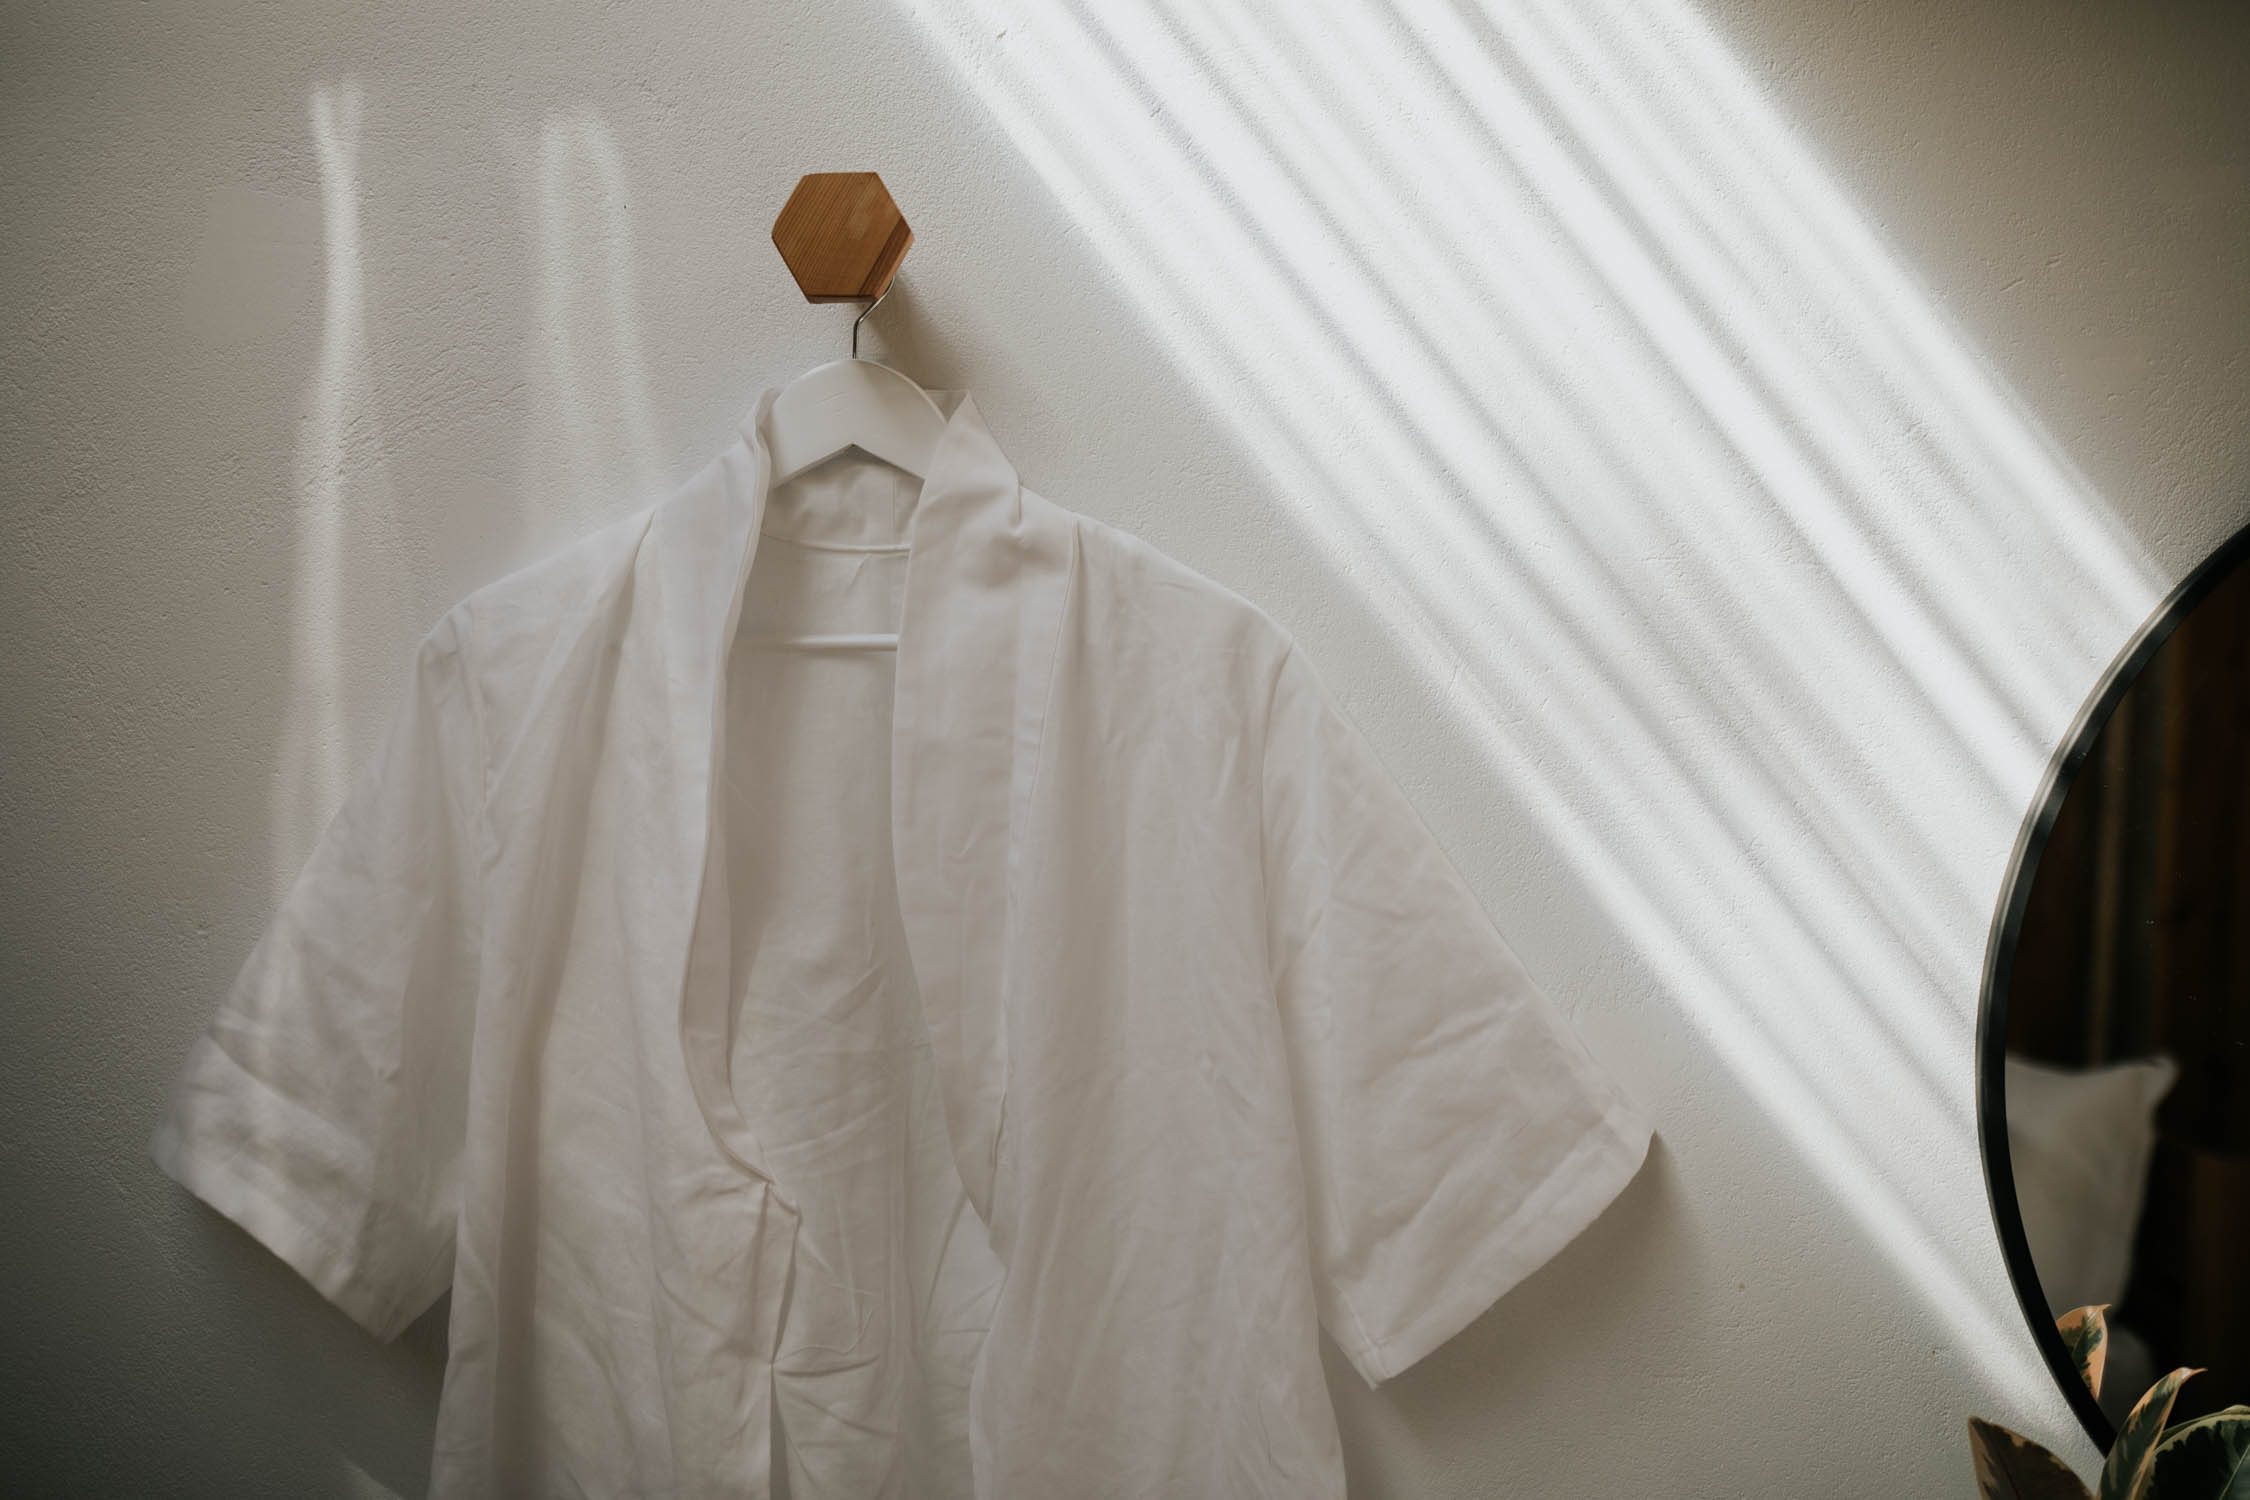 Bride's white linen gown hangs on wooden geometric hook